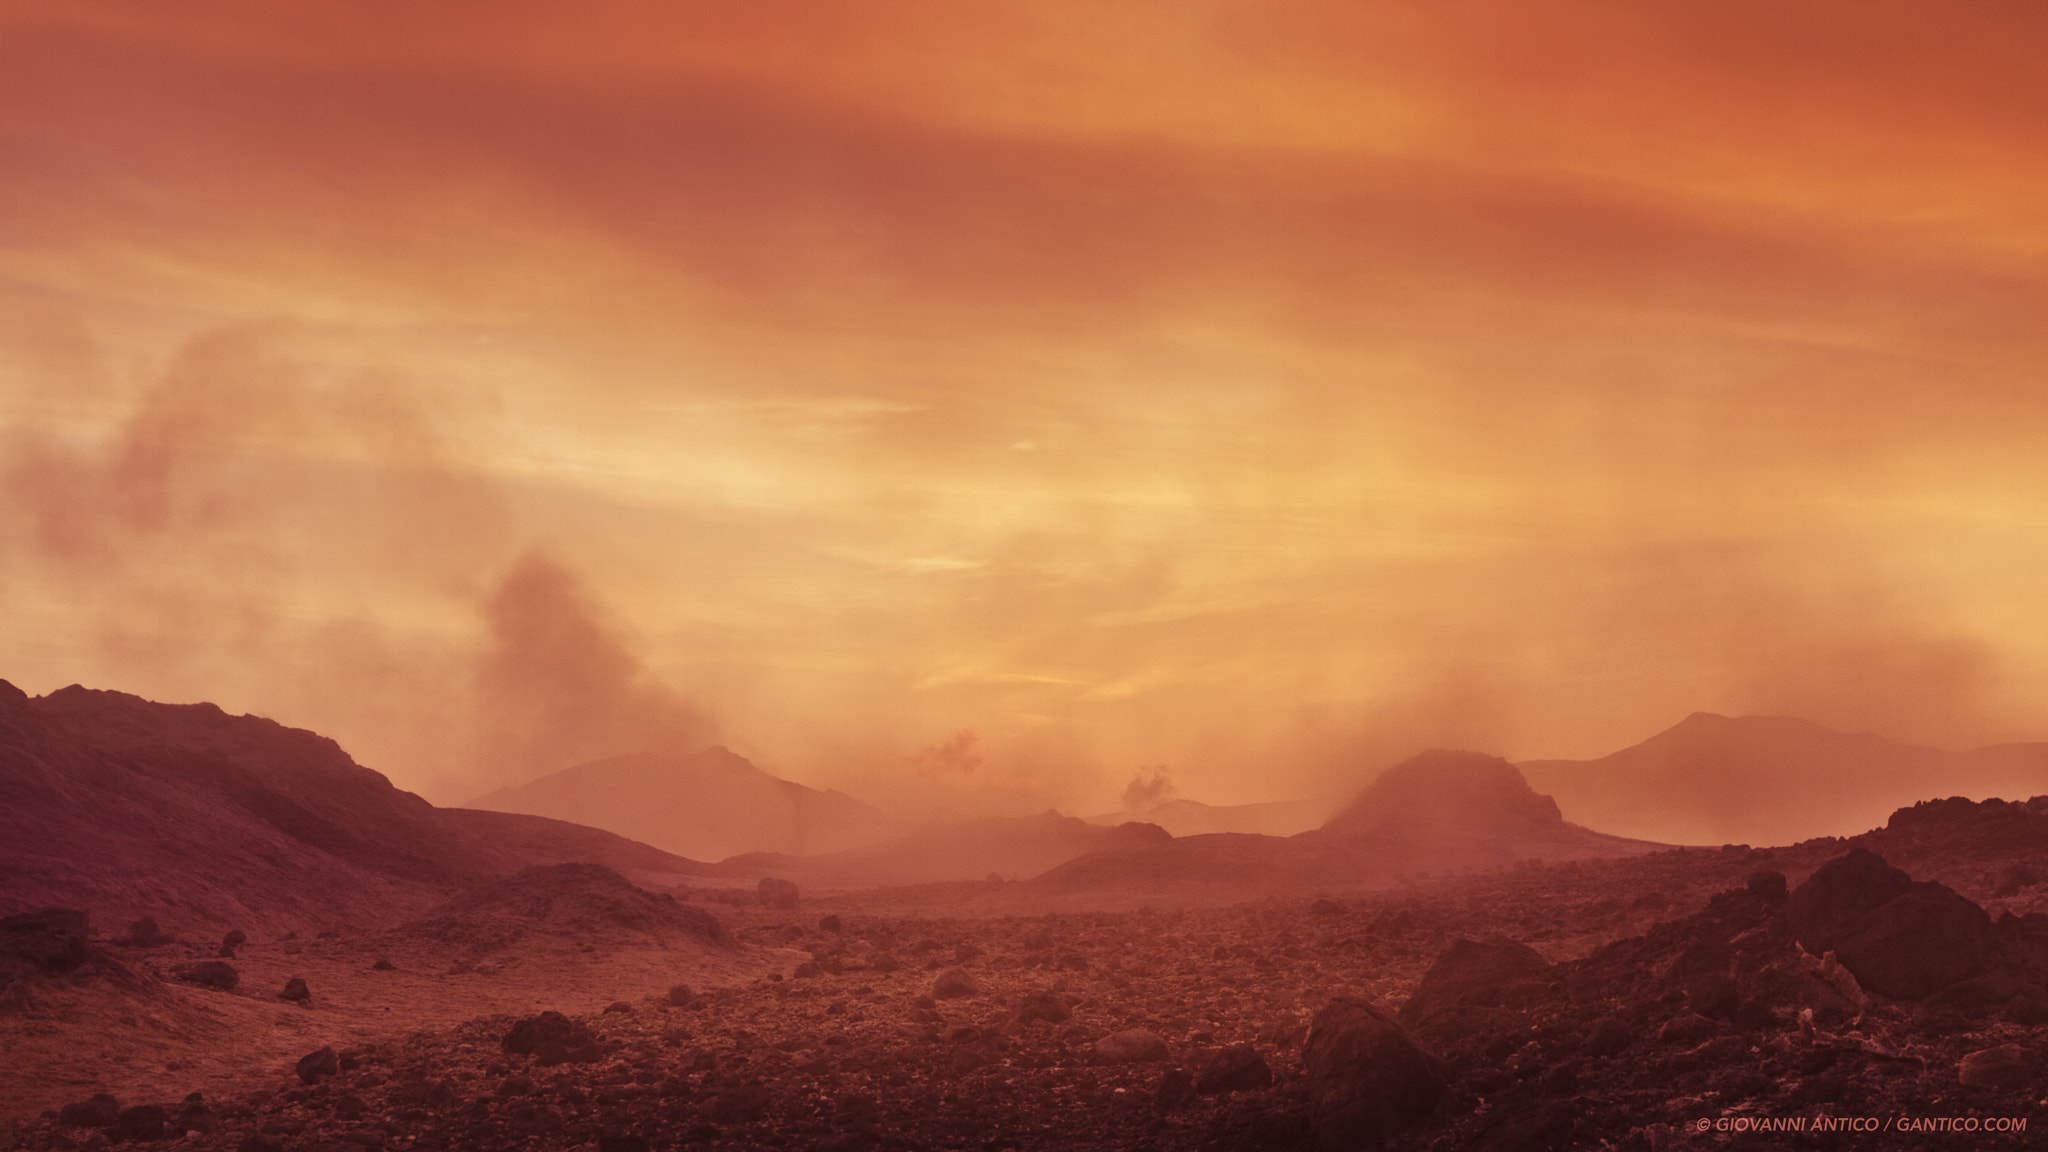 Photograph Atmosphere on Mars by Giovanni Antico on 500px